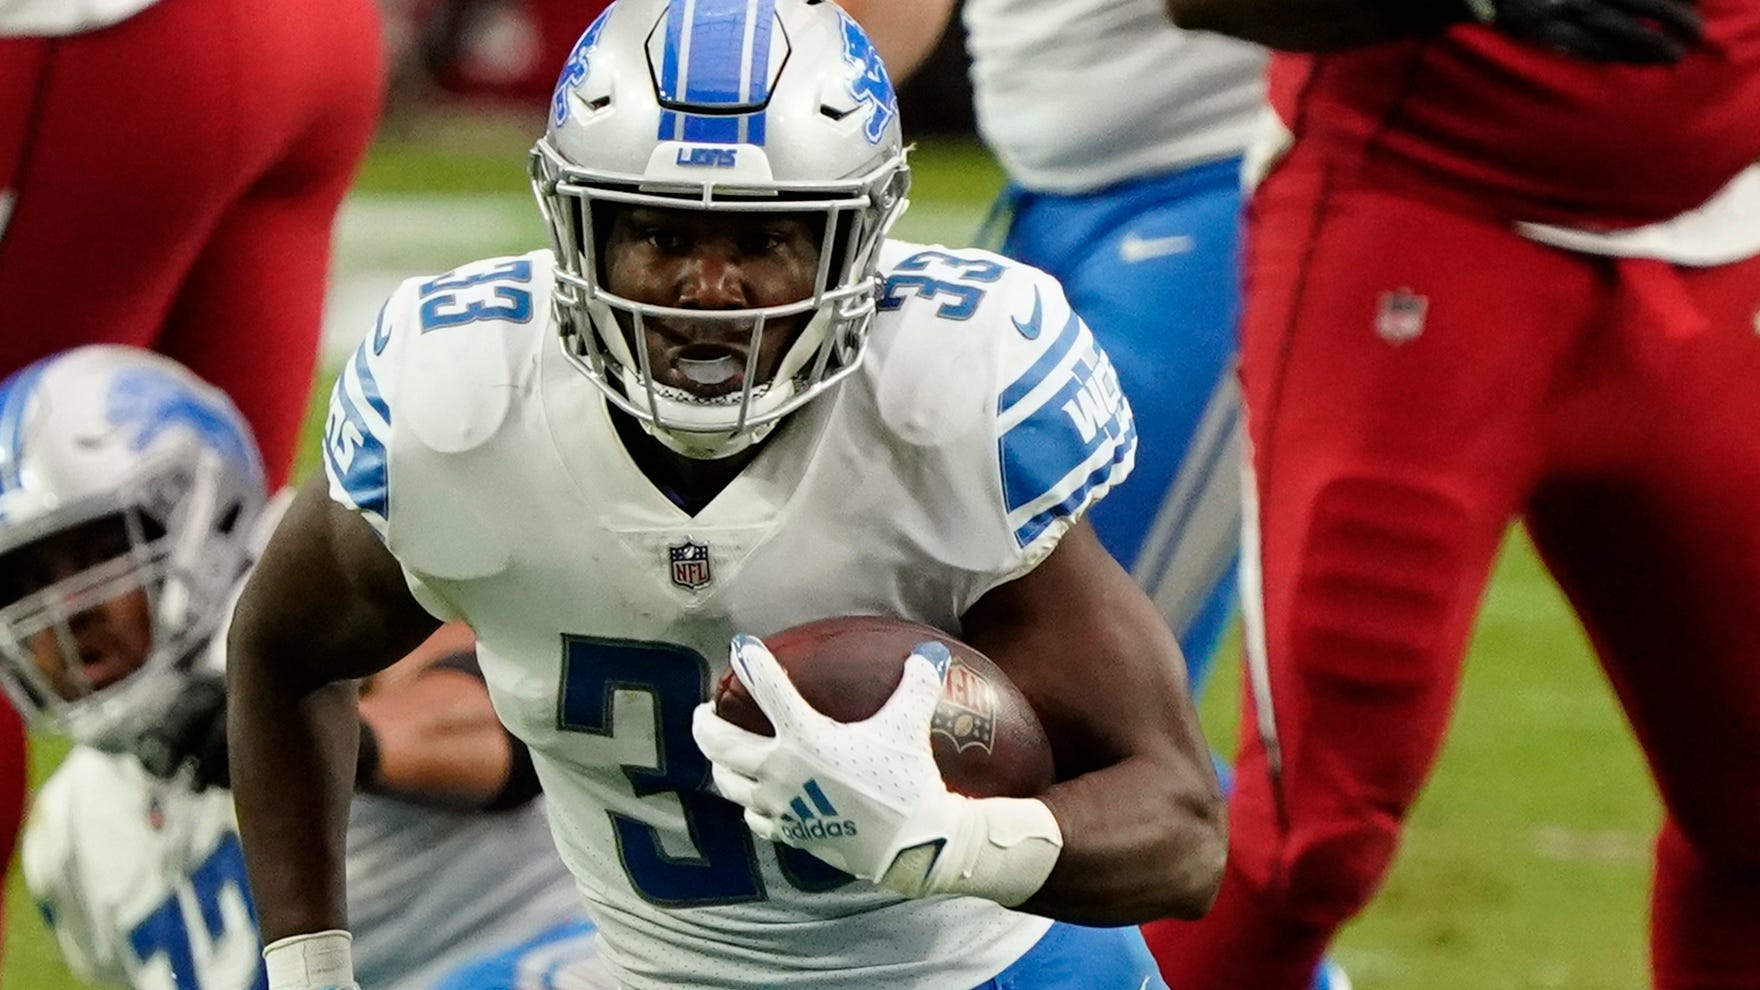 Running back Kerryon Johnson (33) remains the starter in the Lions' backfield that also features D'Andre Swift and Adrian Peterson.